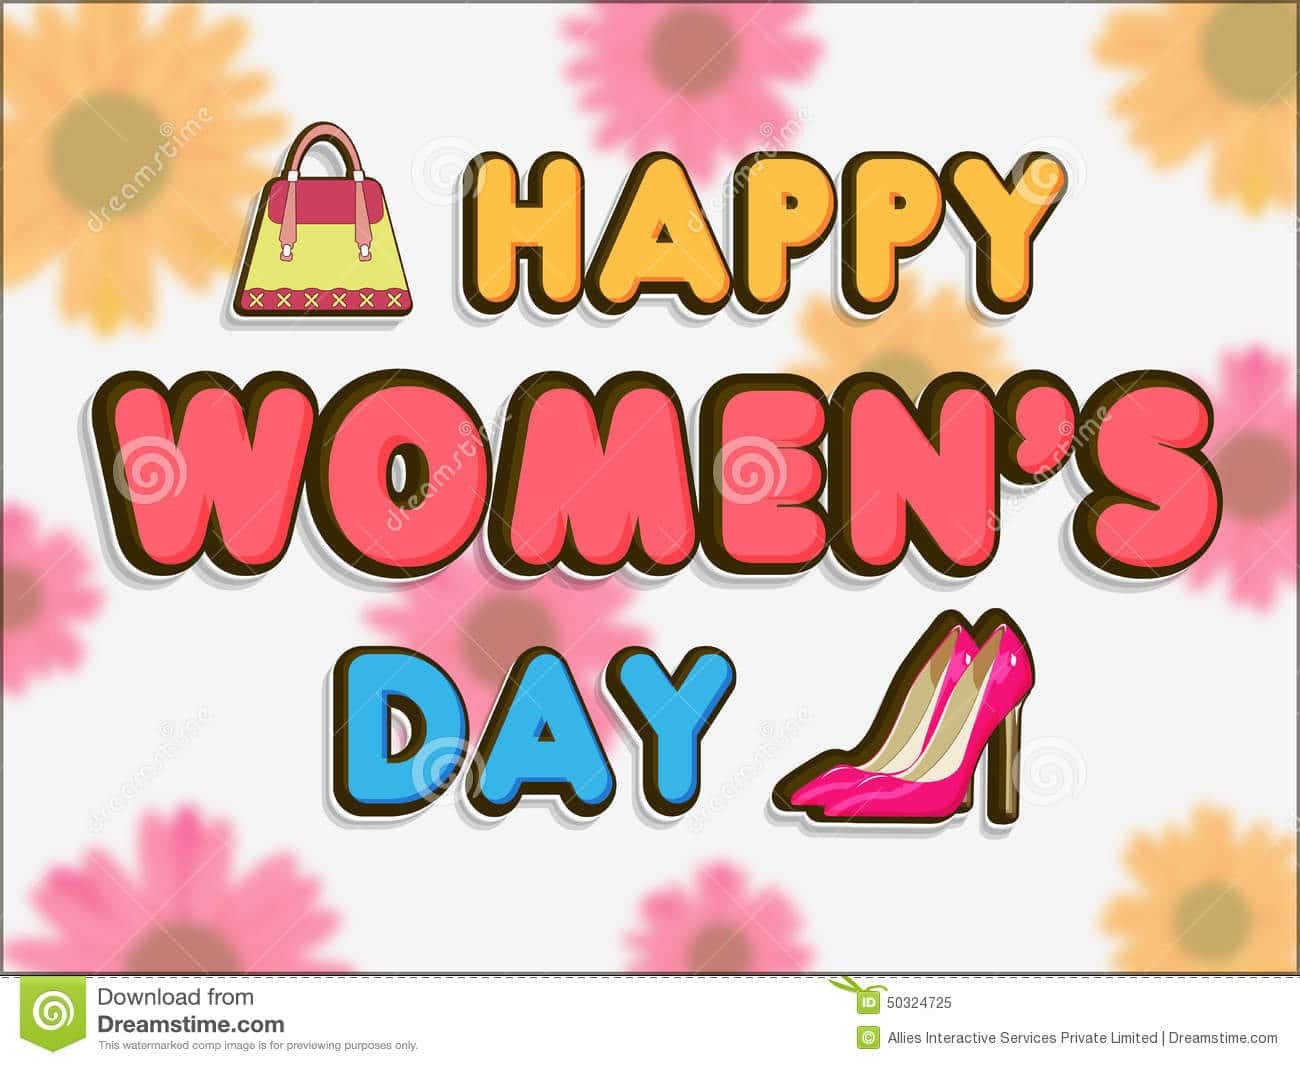 Happy Women's Day HD Images Poster